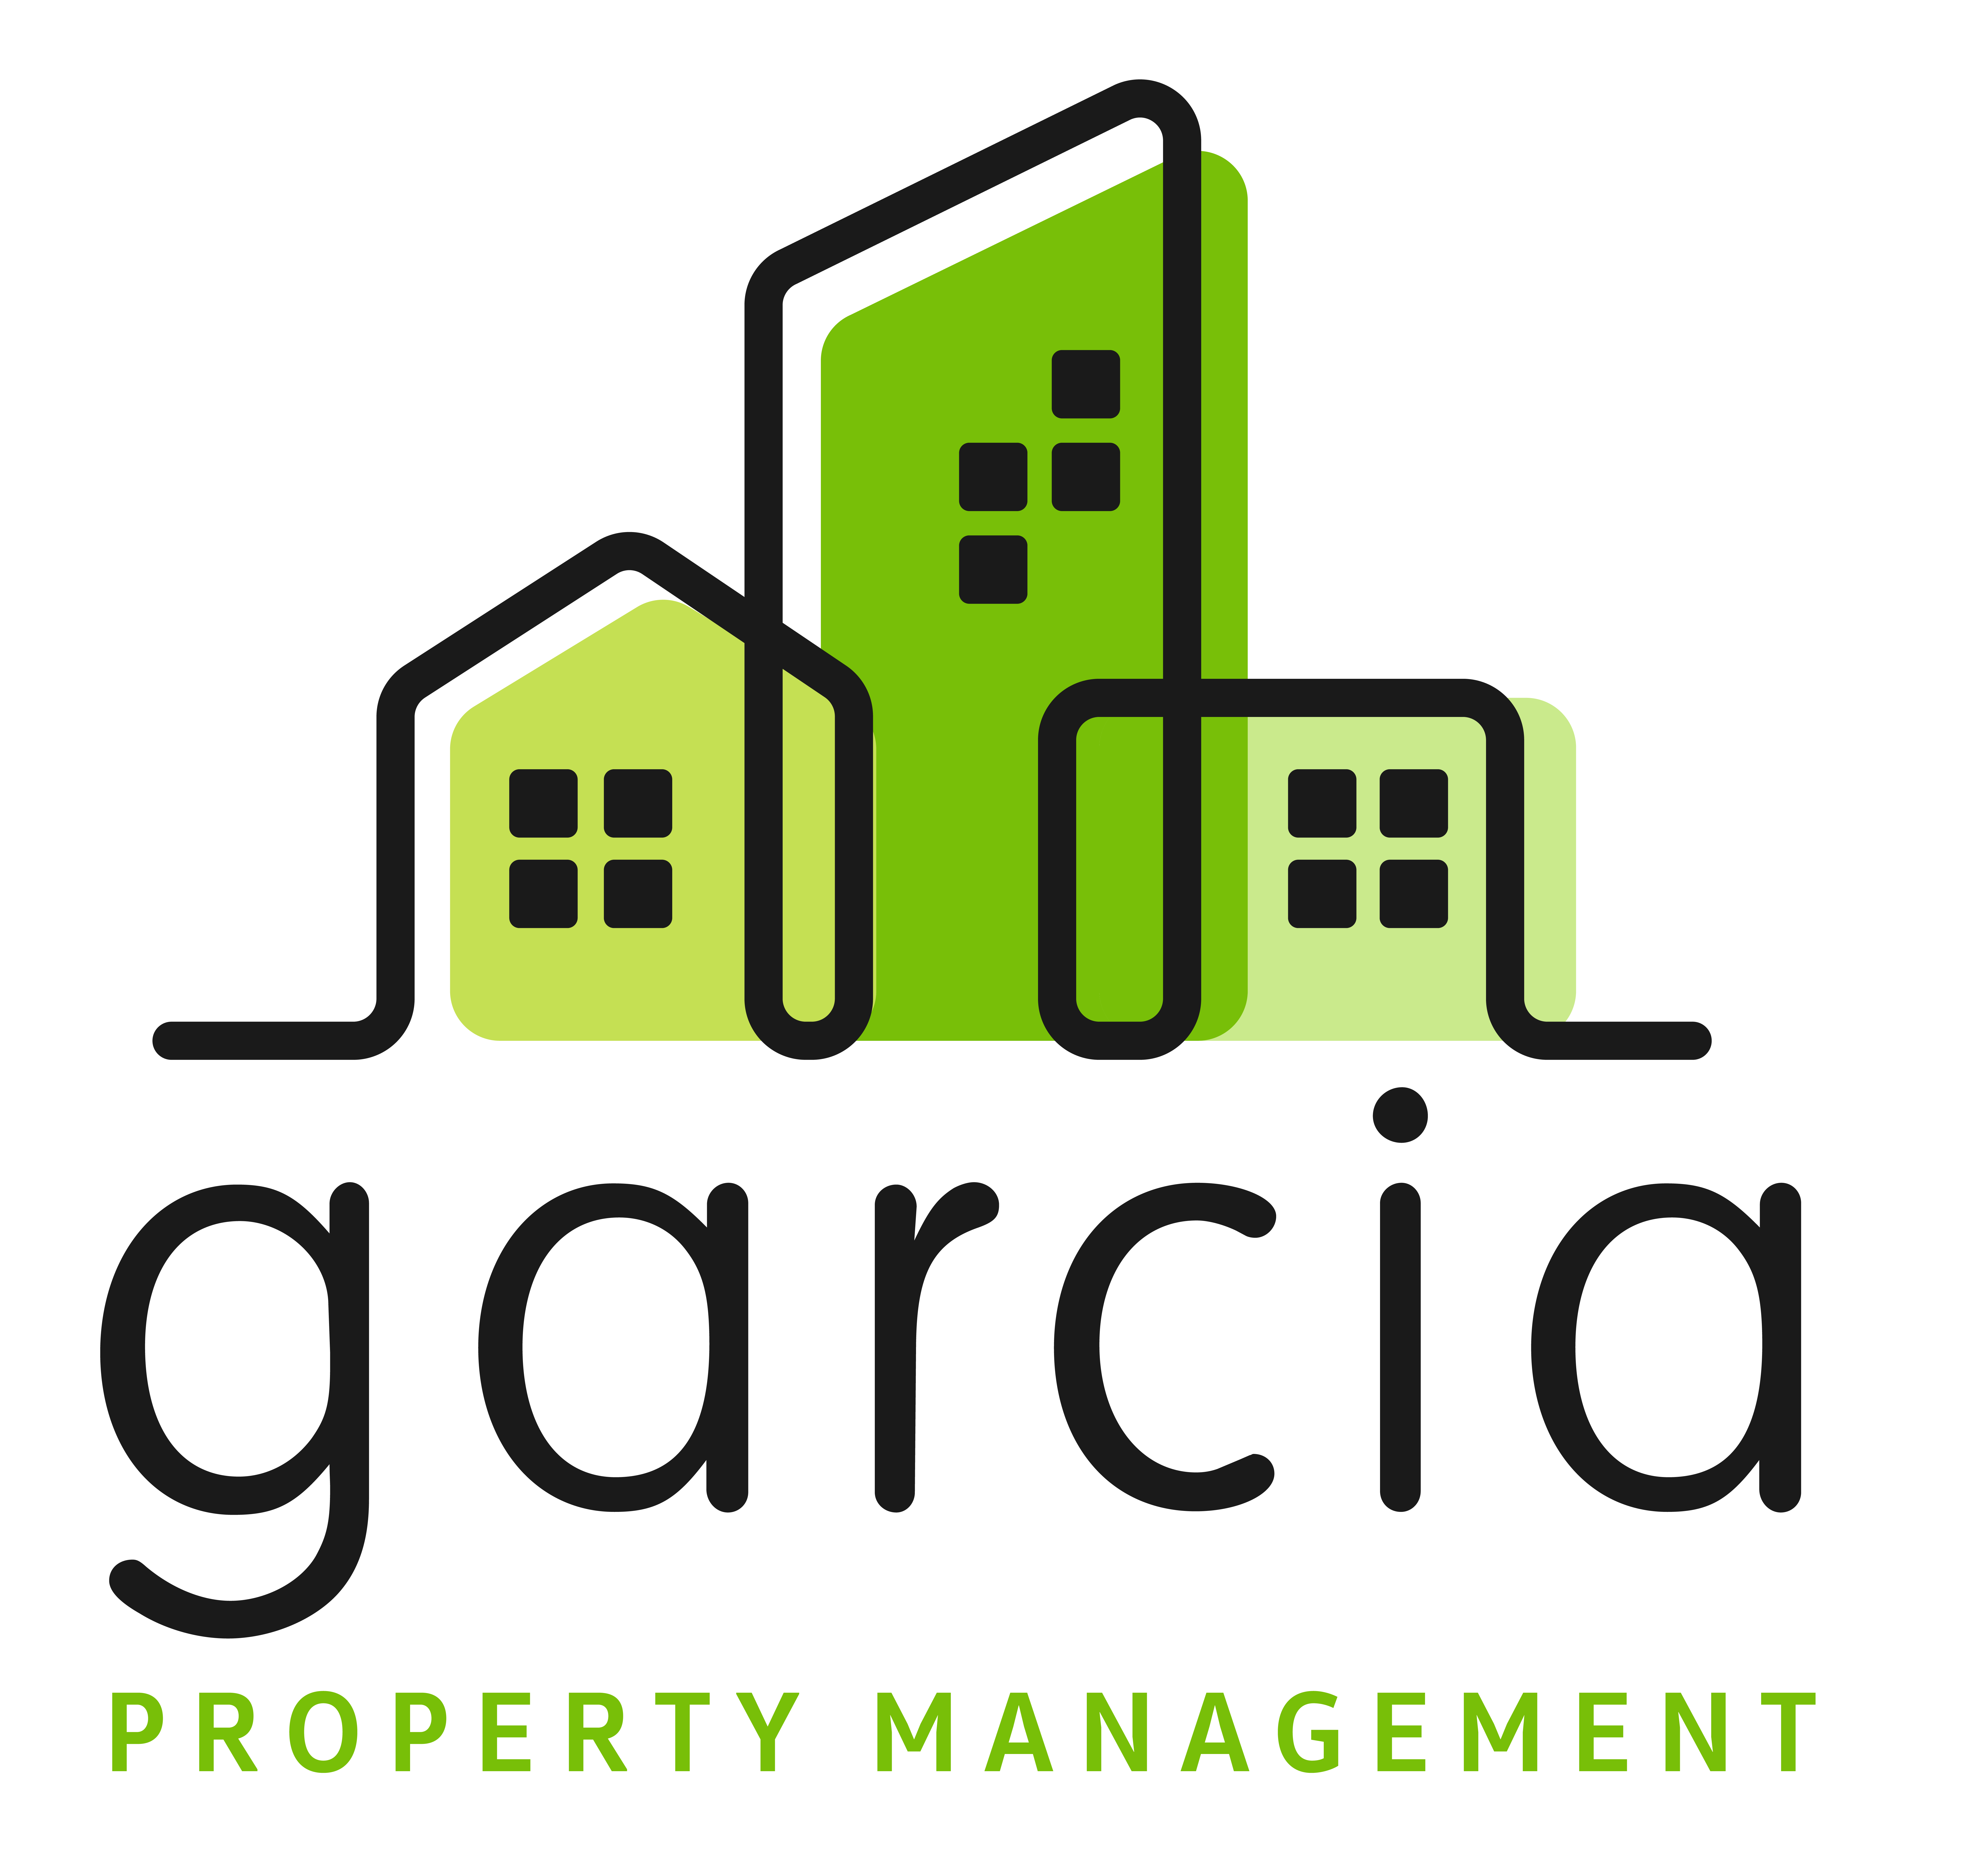 Looking for a new fun and powerful logo that will attract new tenants and investors.